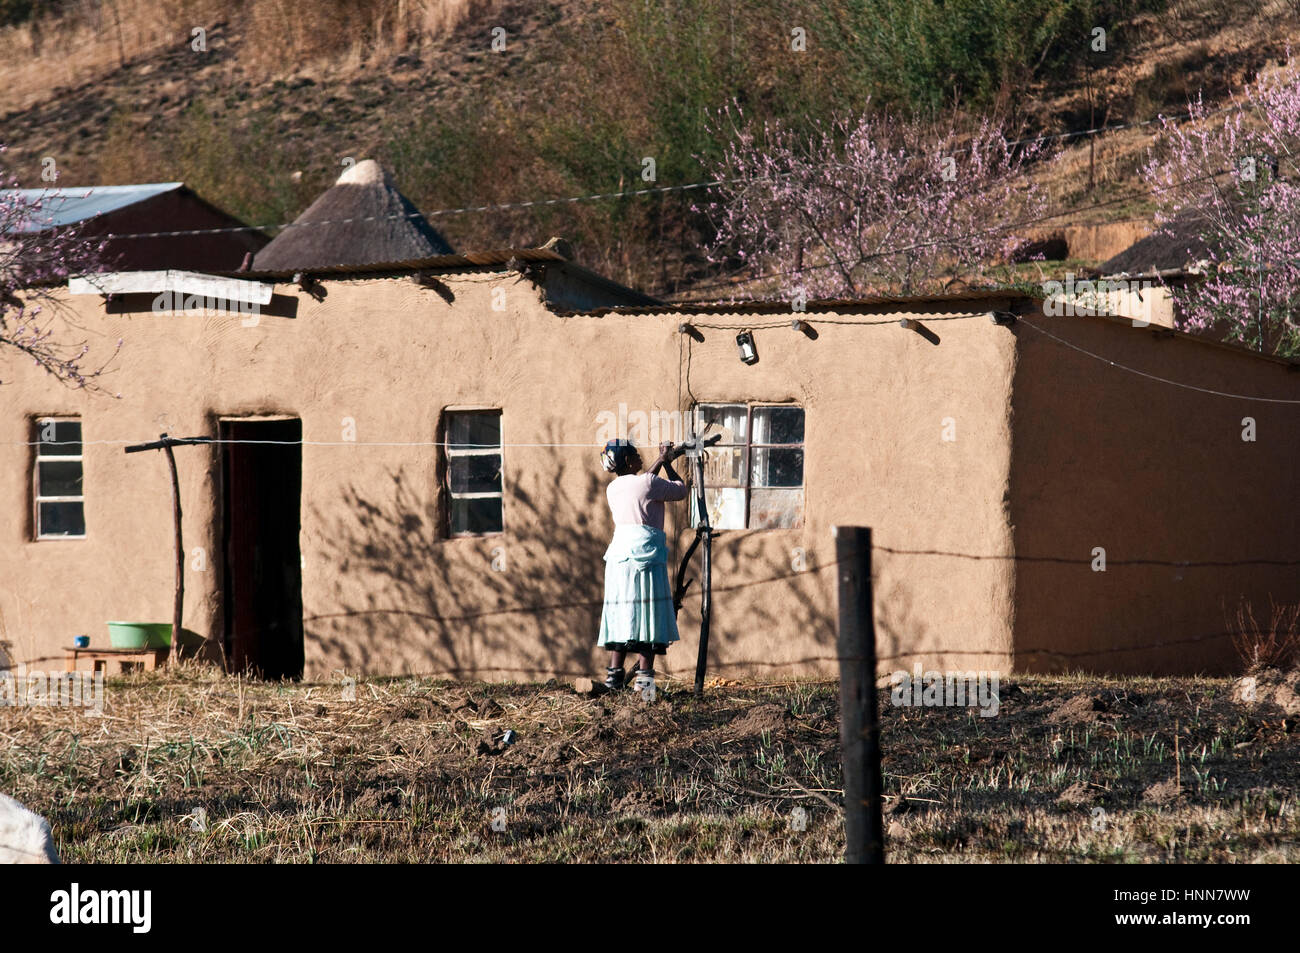 Local rural inhabitants in the Giants Castle region of Kwazulu Natal South Africa - Stock Image